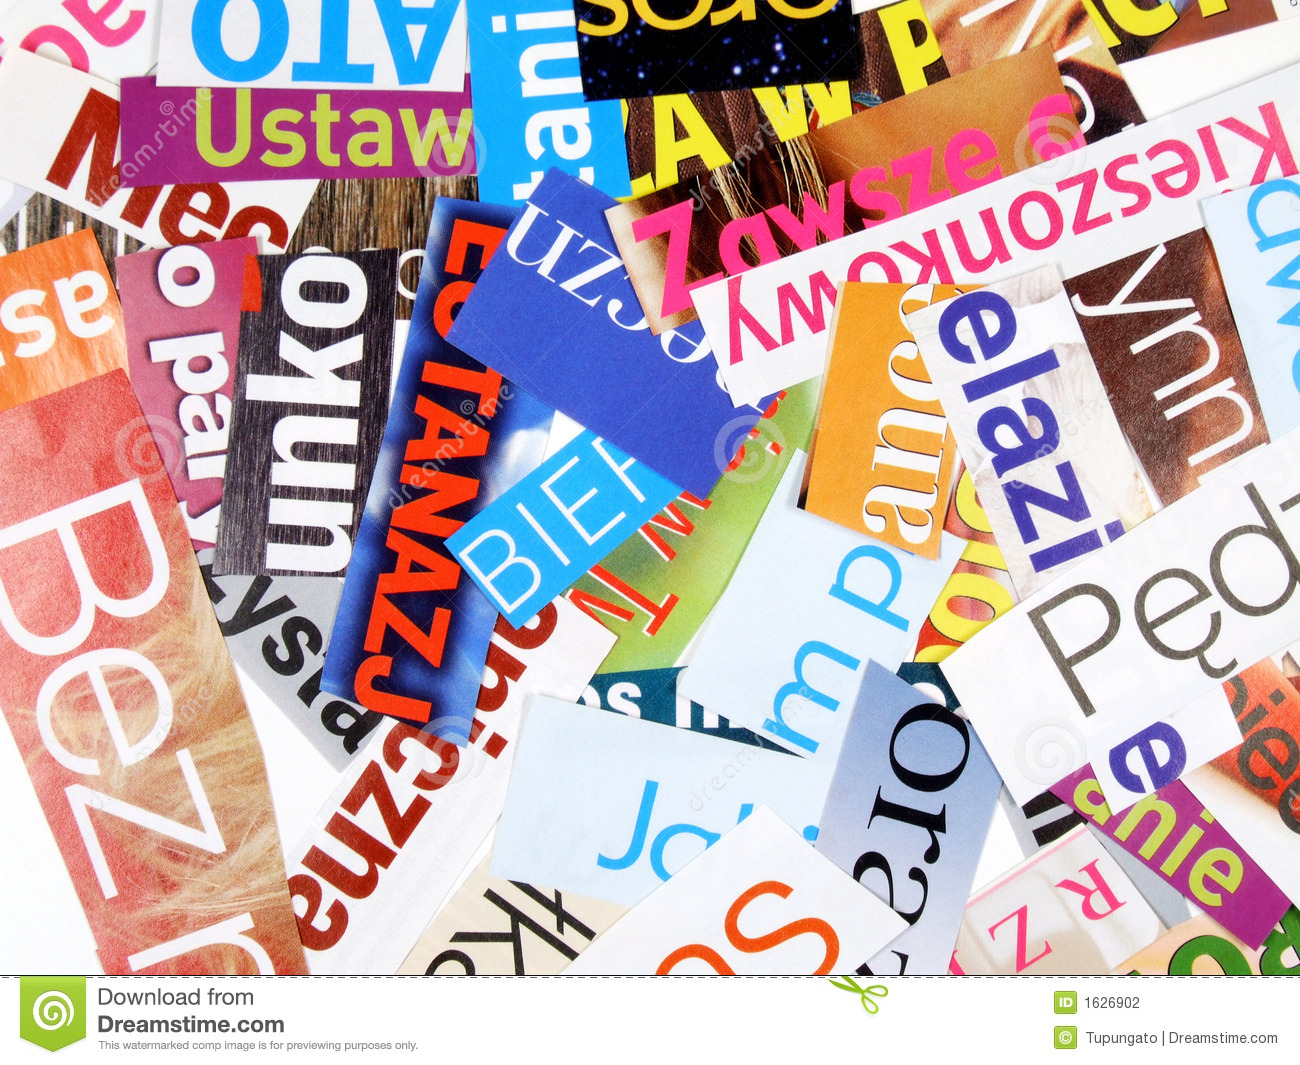 magazine cuttings incomplete words stock photography newspaper clip art printable newspaper clipart png